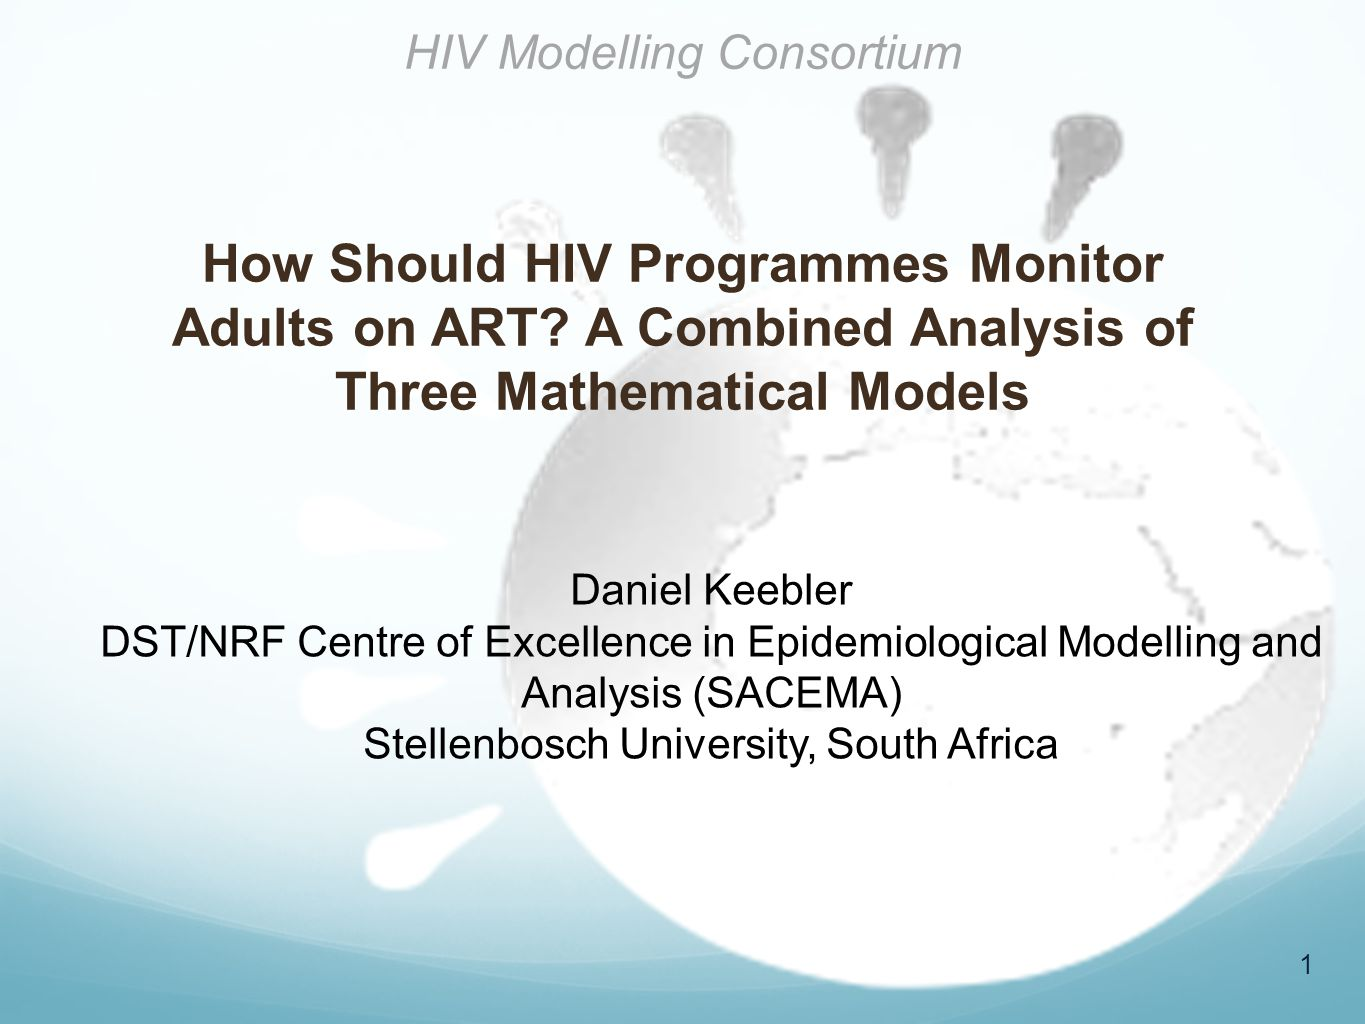 1 Daniel Keebler DST/NRF Centre of Excellence in Epidemiological Modelling and Analysis (SACEMA) Stellenbosch University, South Africa HIV Modelling C